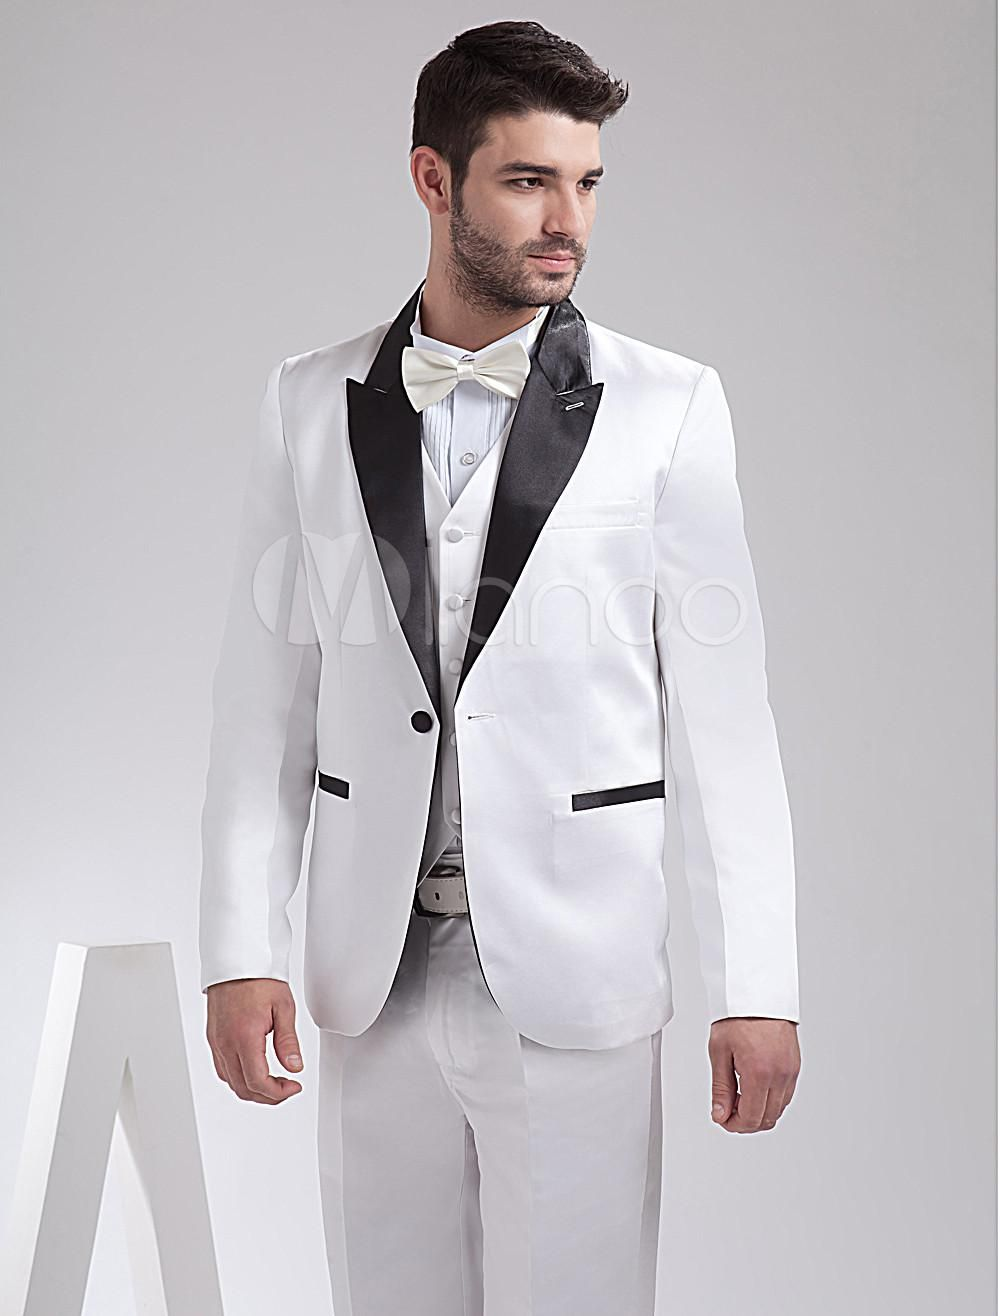 Wedding Wedding Tuxedo 2014 new arrival gray wedding tuxedos for groom custom made suit white ocodea